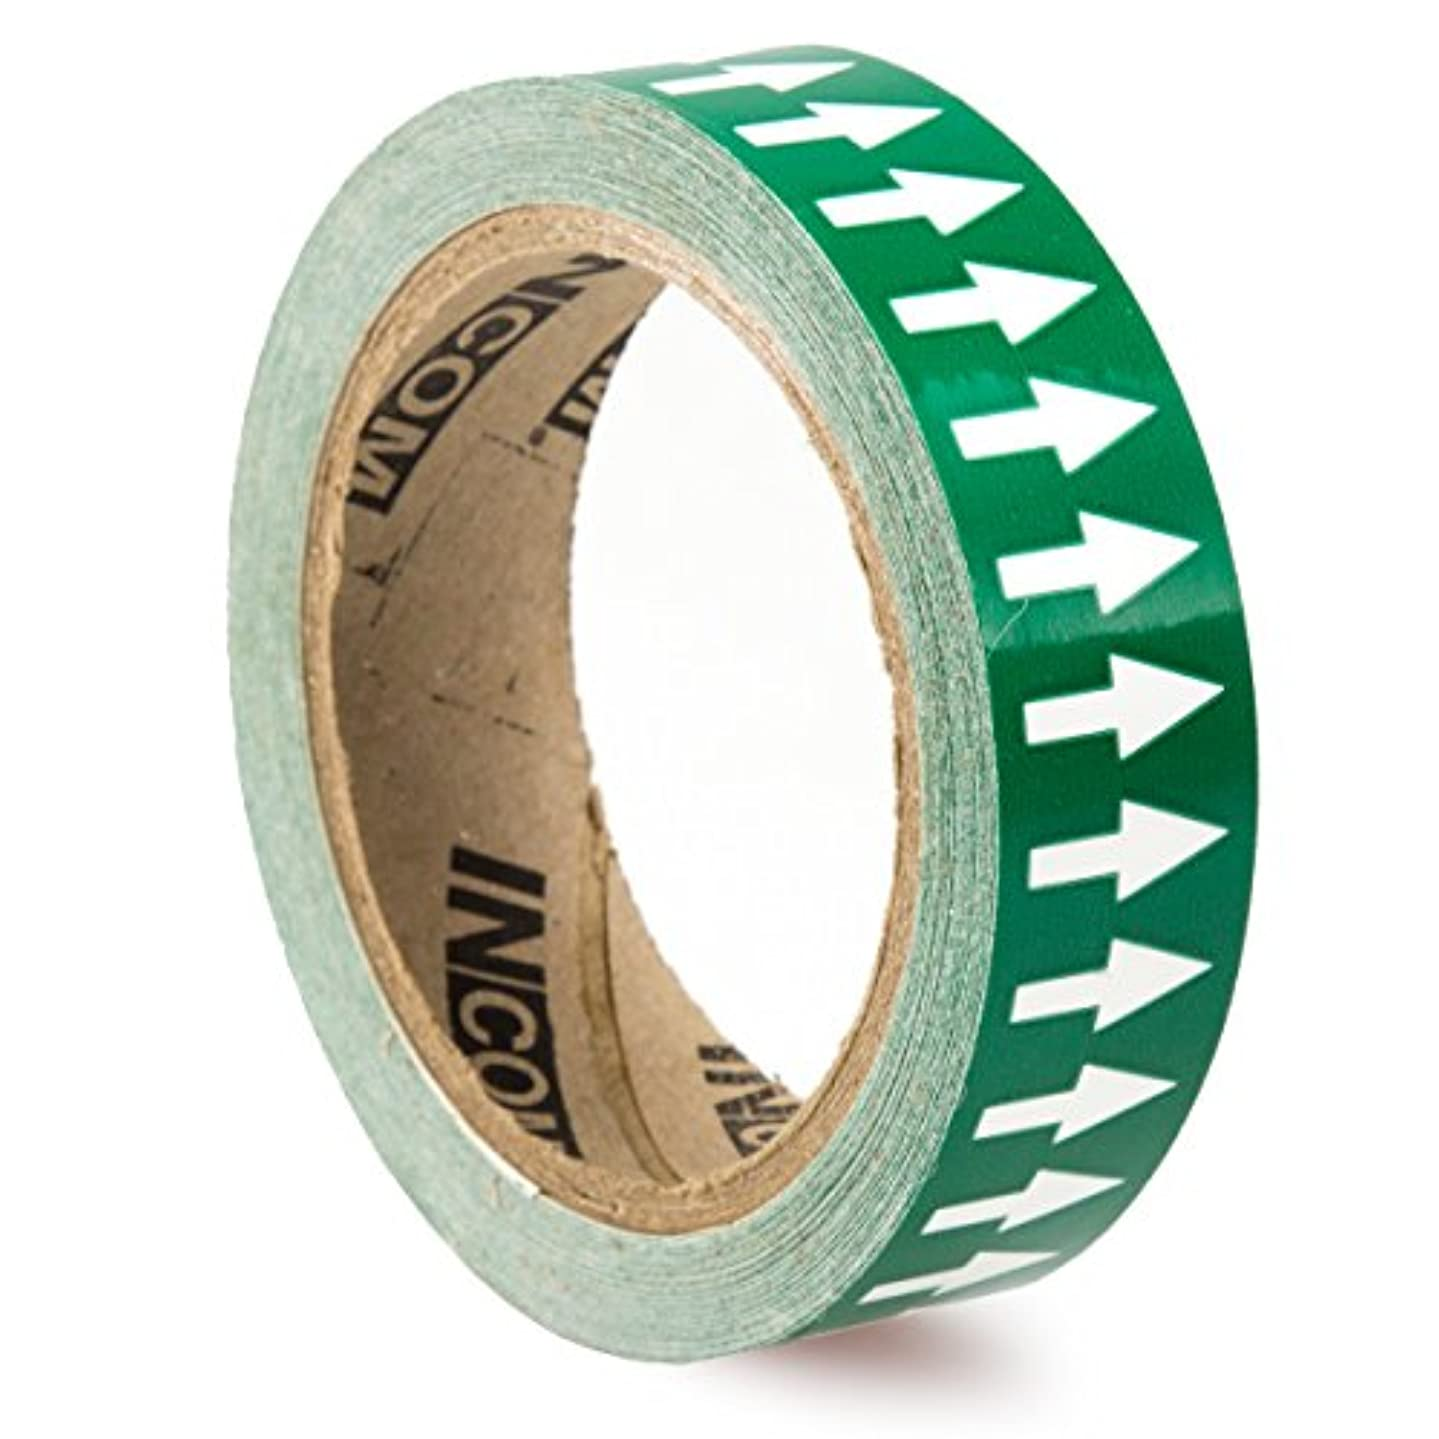 Accuform Signs RAW451GNWT Vinyl Directional Flow Arrow Tape, White Arrow on Green, 1